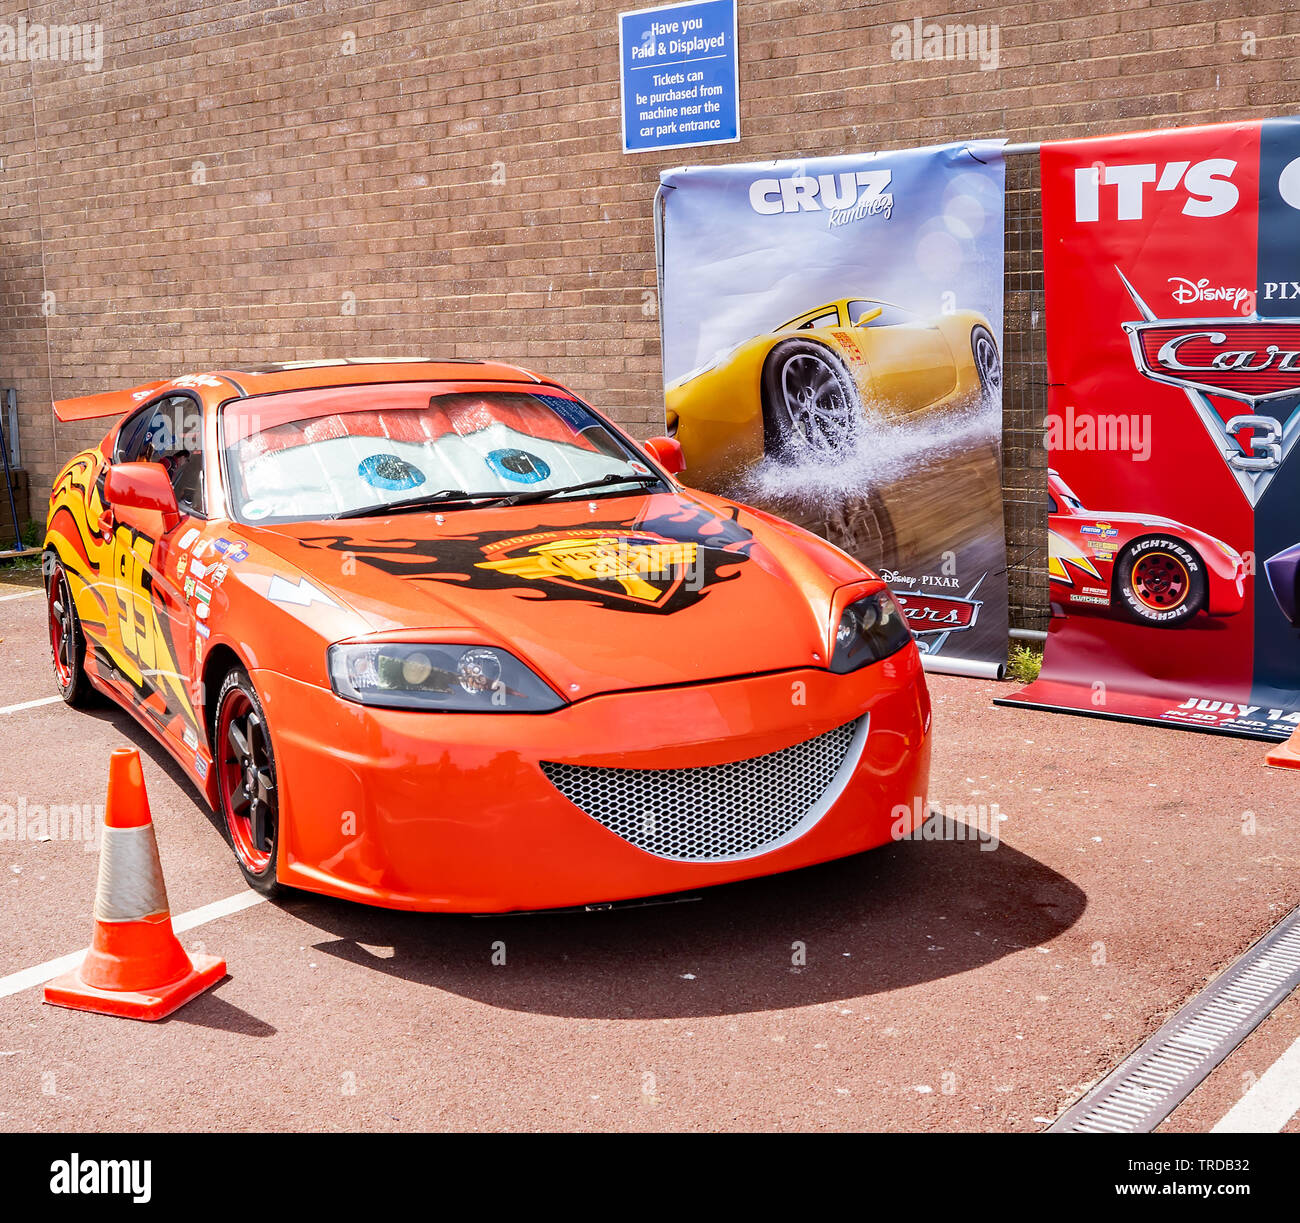 """Great Yarmouth Comicon 2019 – A replica of """"Lightening McQueen"""", one of the cars in the Disney Cars animation, on display at the Comicon event in the - Stock Image"""